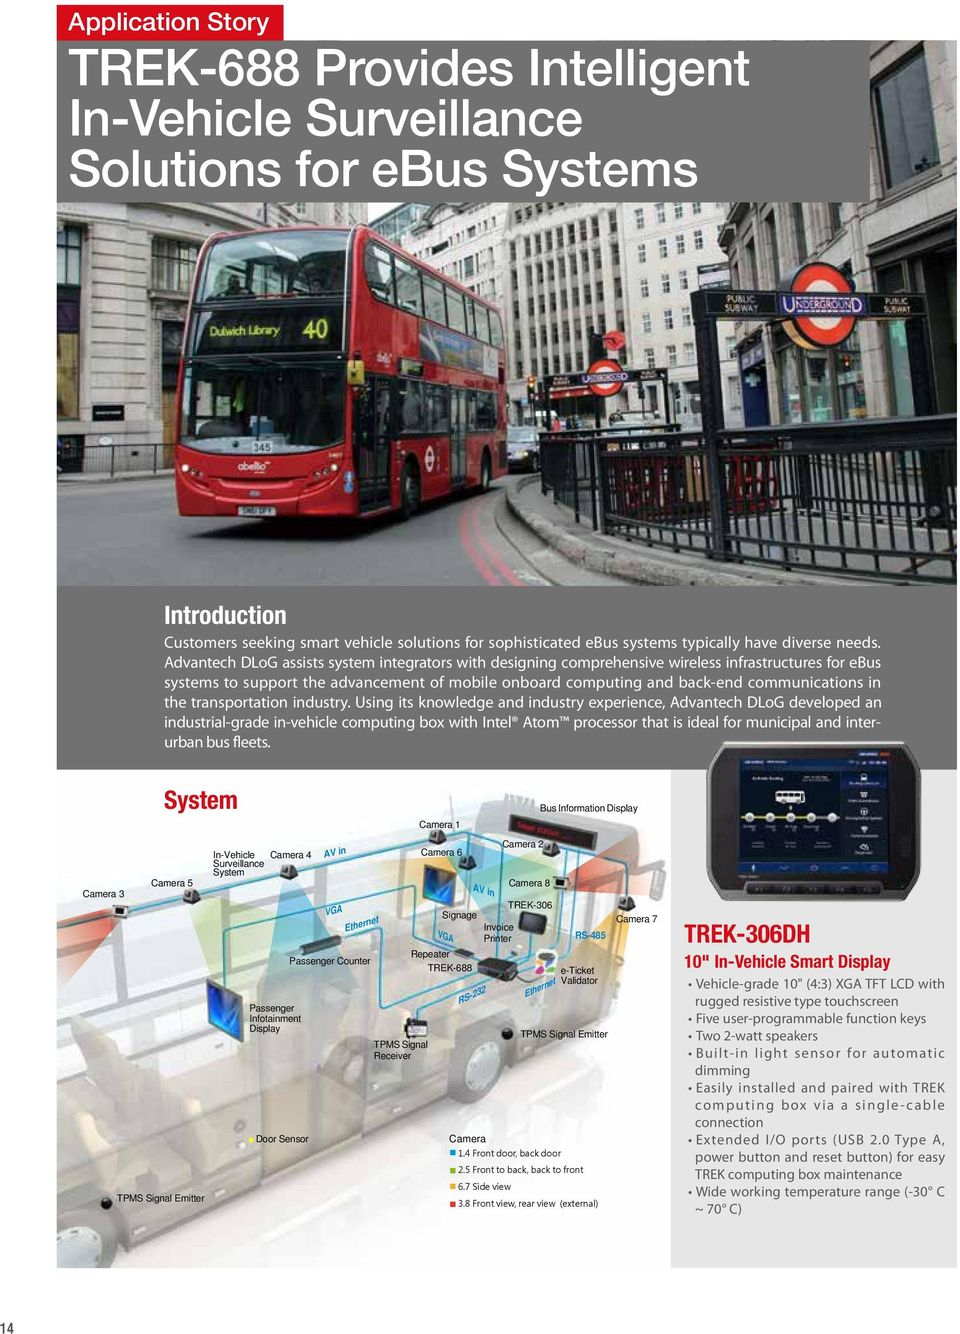 Advantech DLoG assists system integrators with designing comprehensive wireless infrastructures for ebus systems to support the advancement of mobile onboard computing and back-end communications in